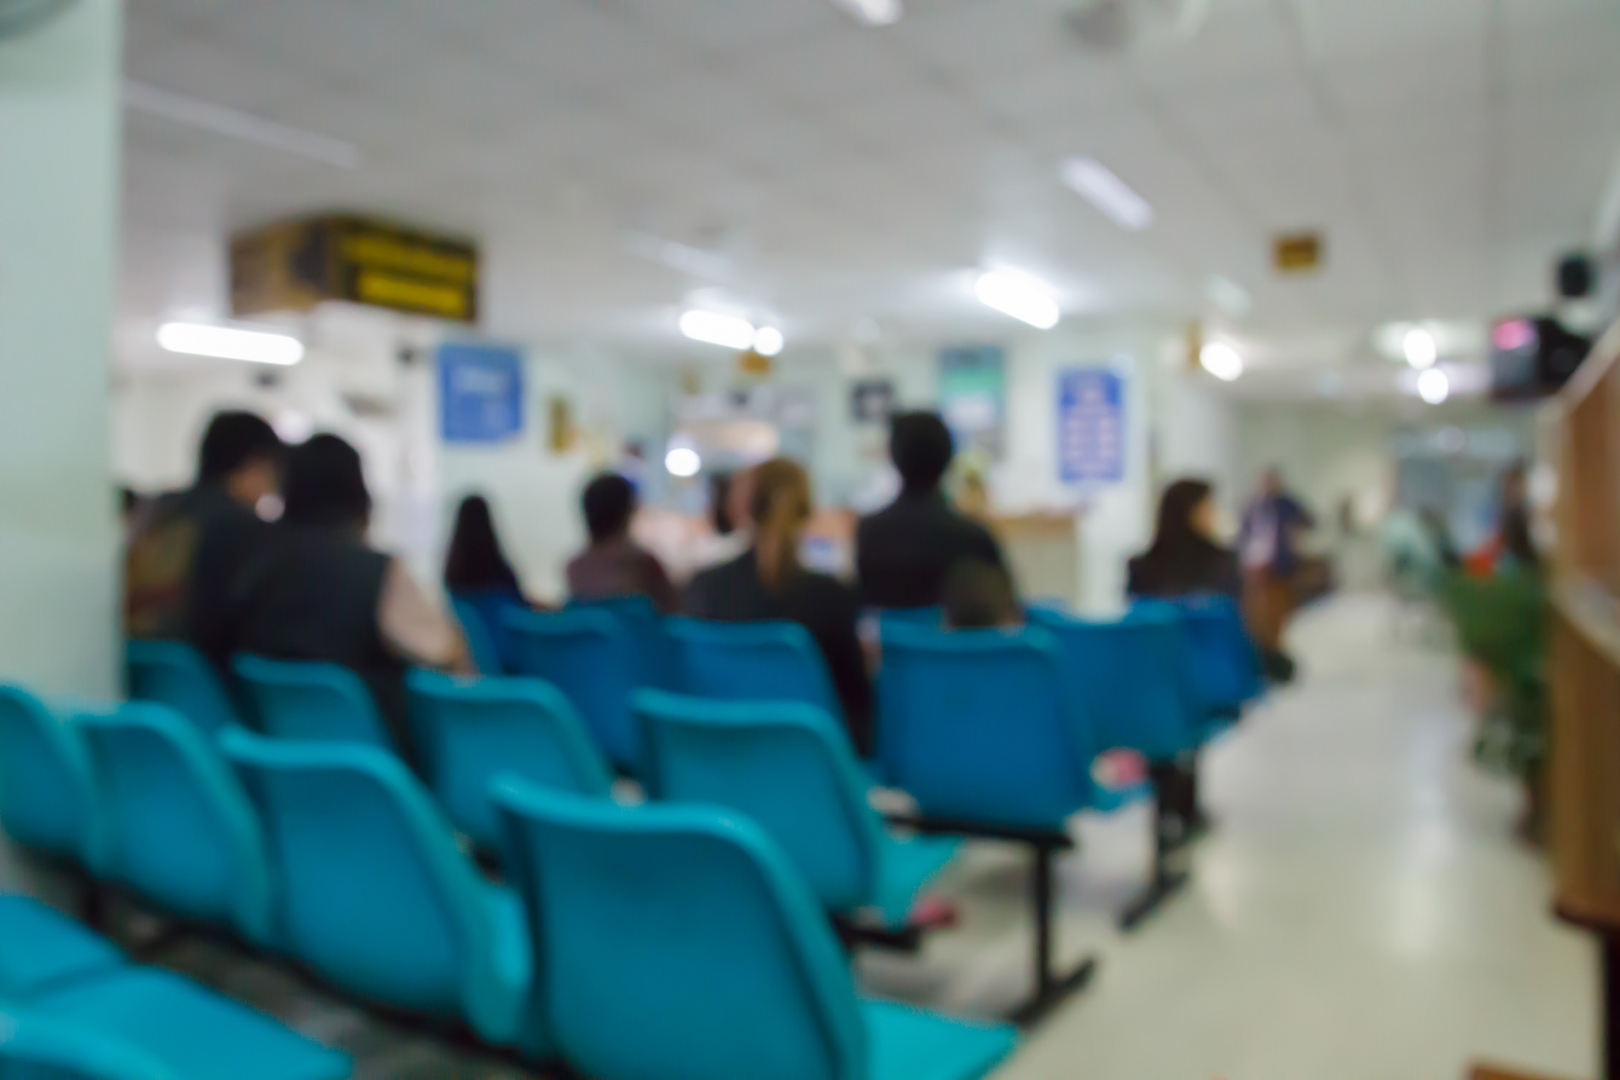 Patients waiting in a clinic waiting room